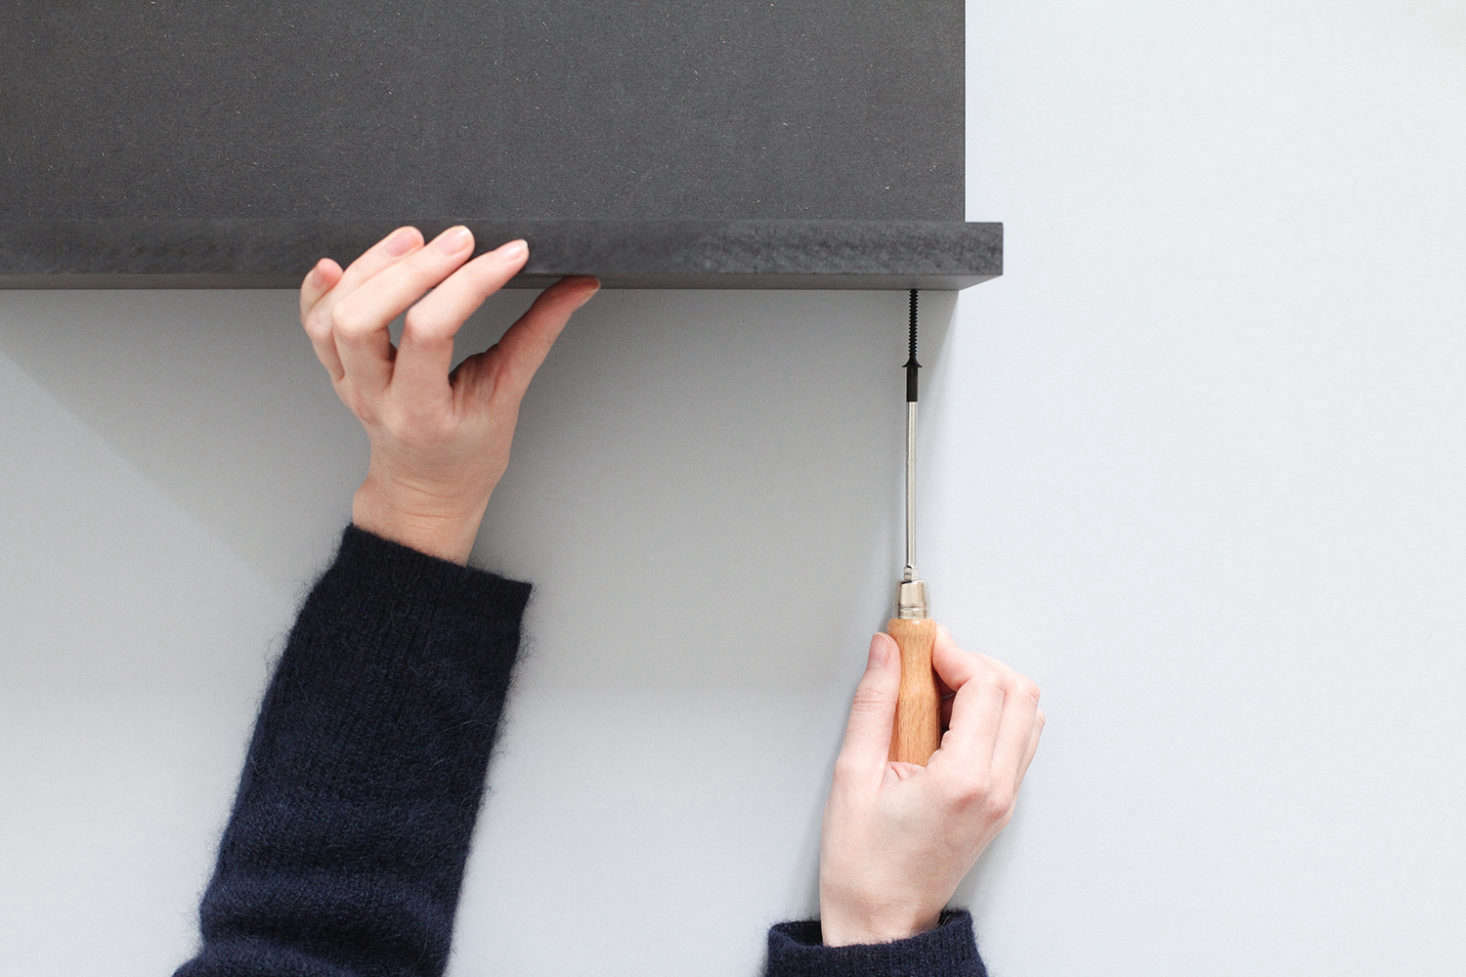 Drill 8-millimeter-wide holes into the top and bottom panels, 3.5 centimeters from the edge (one hole in the center and one at each end). Widen the holes as needed with your drill and screw the bottom panel to the back. N.B.: The designers recommend using black screws.